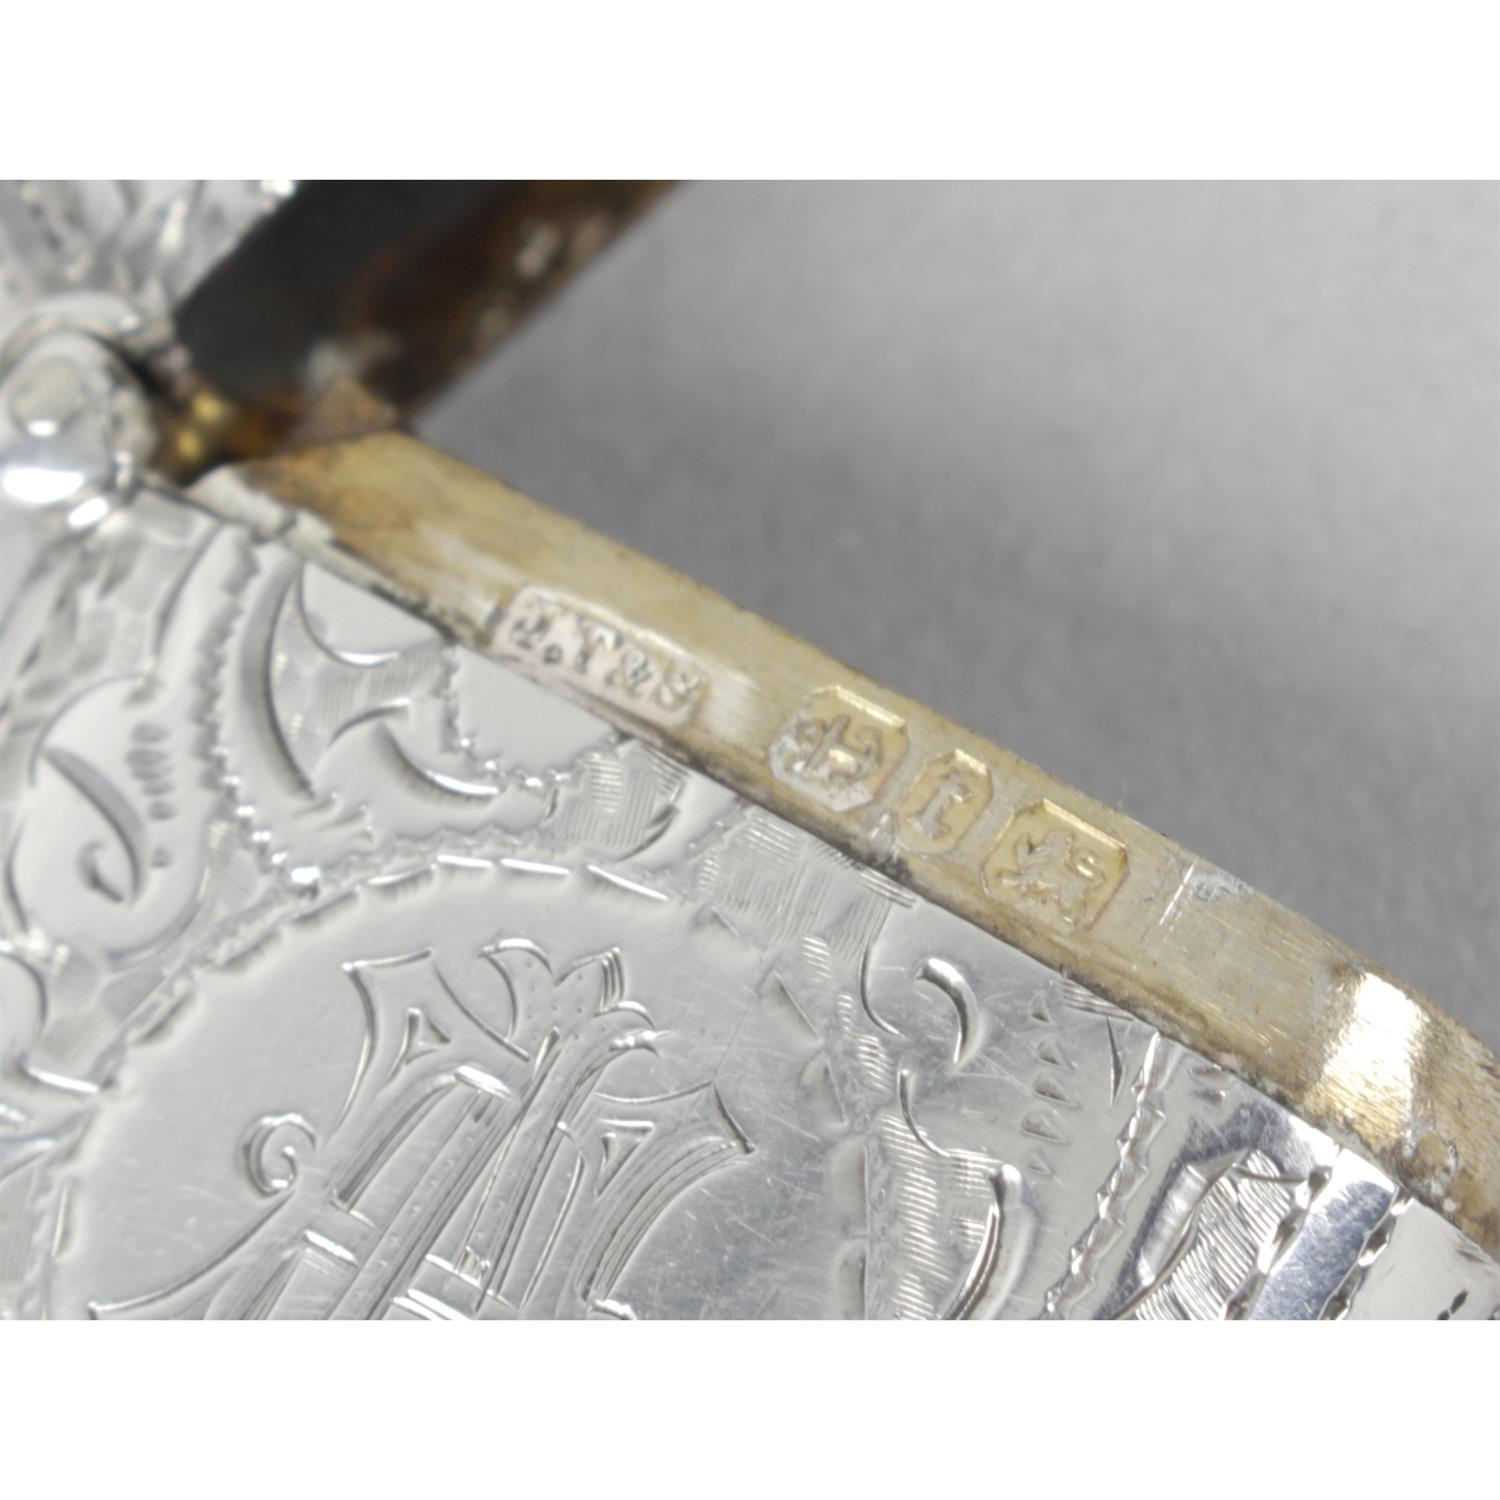 Three late Victorian silver vesta cases, with floral and foliate engraving. (3). - Image 2 of 4